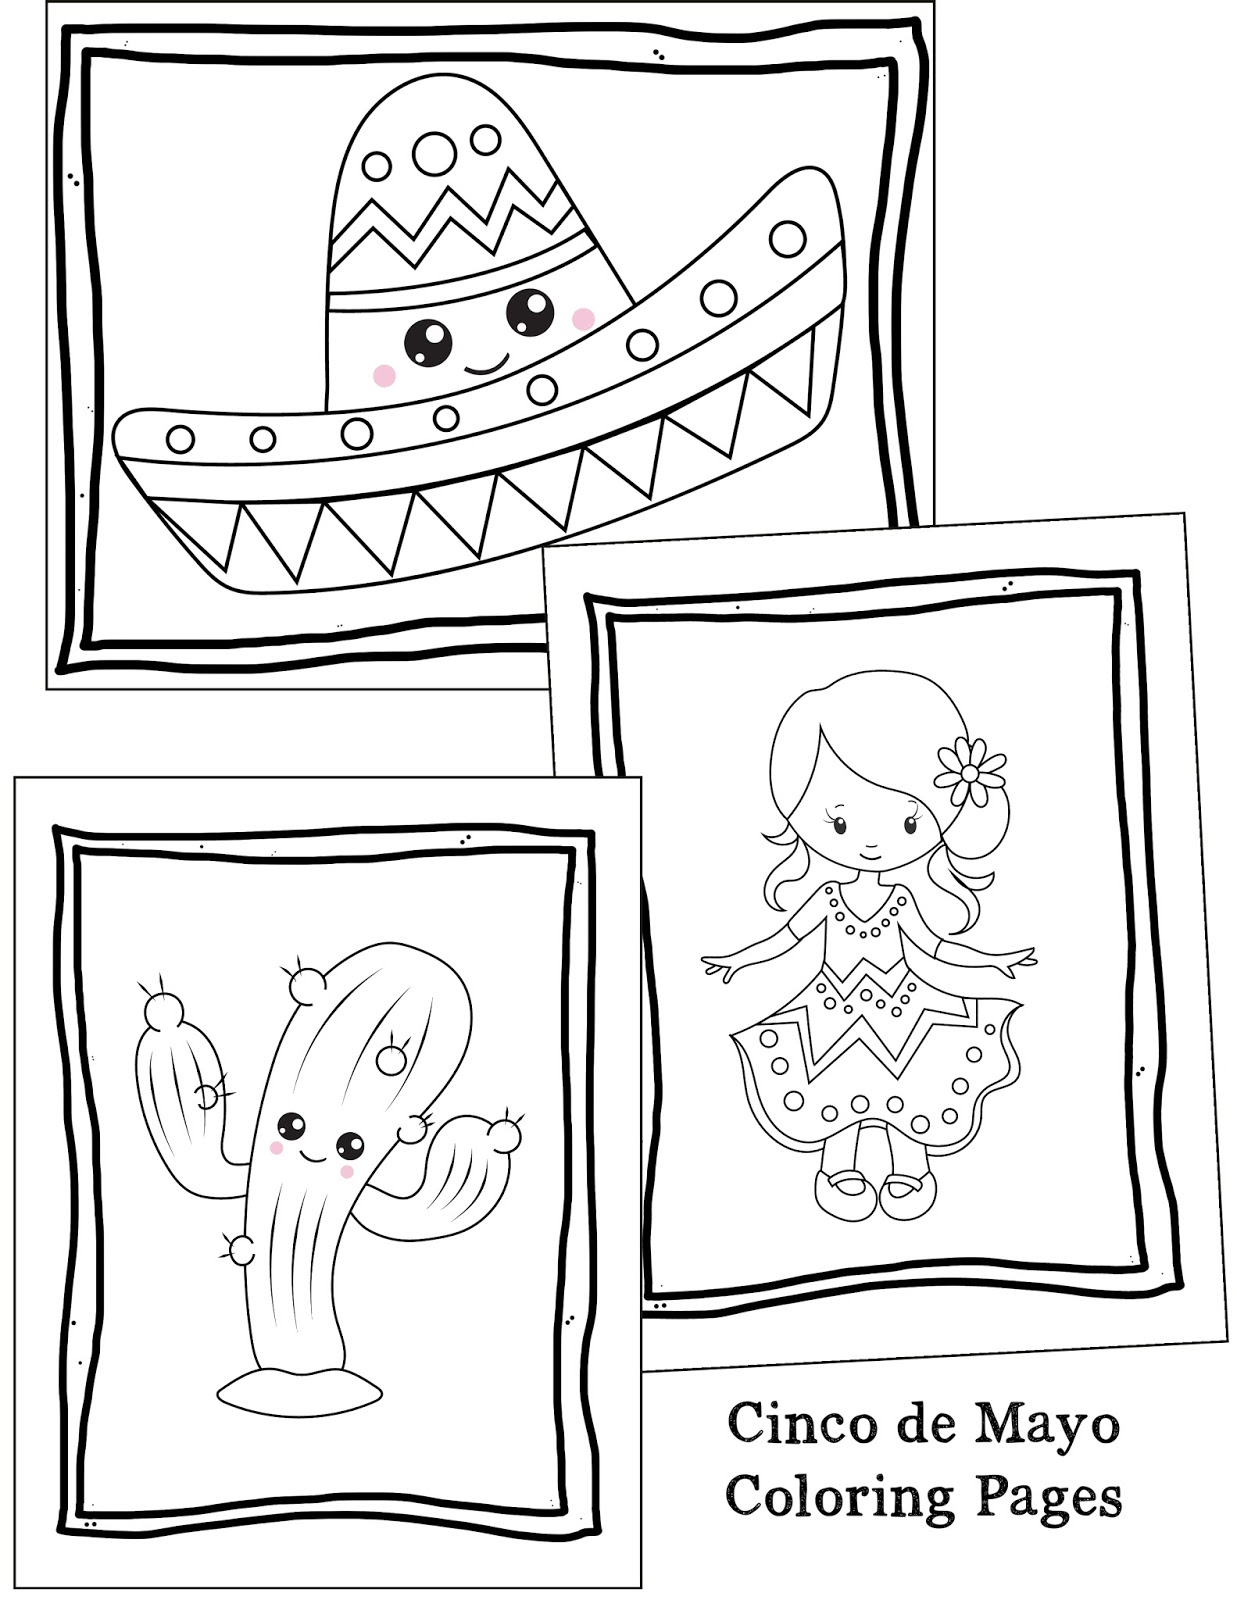 Cinco De Mayo Celebration Free Coloring Pages For Kids - Printable ... | 1600x1237